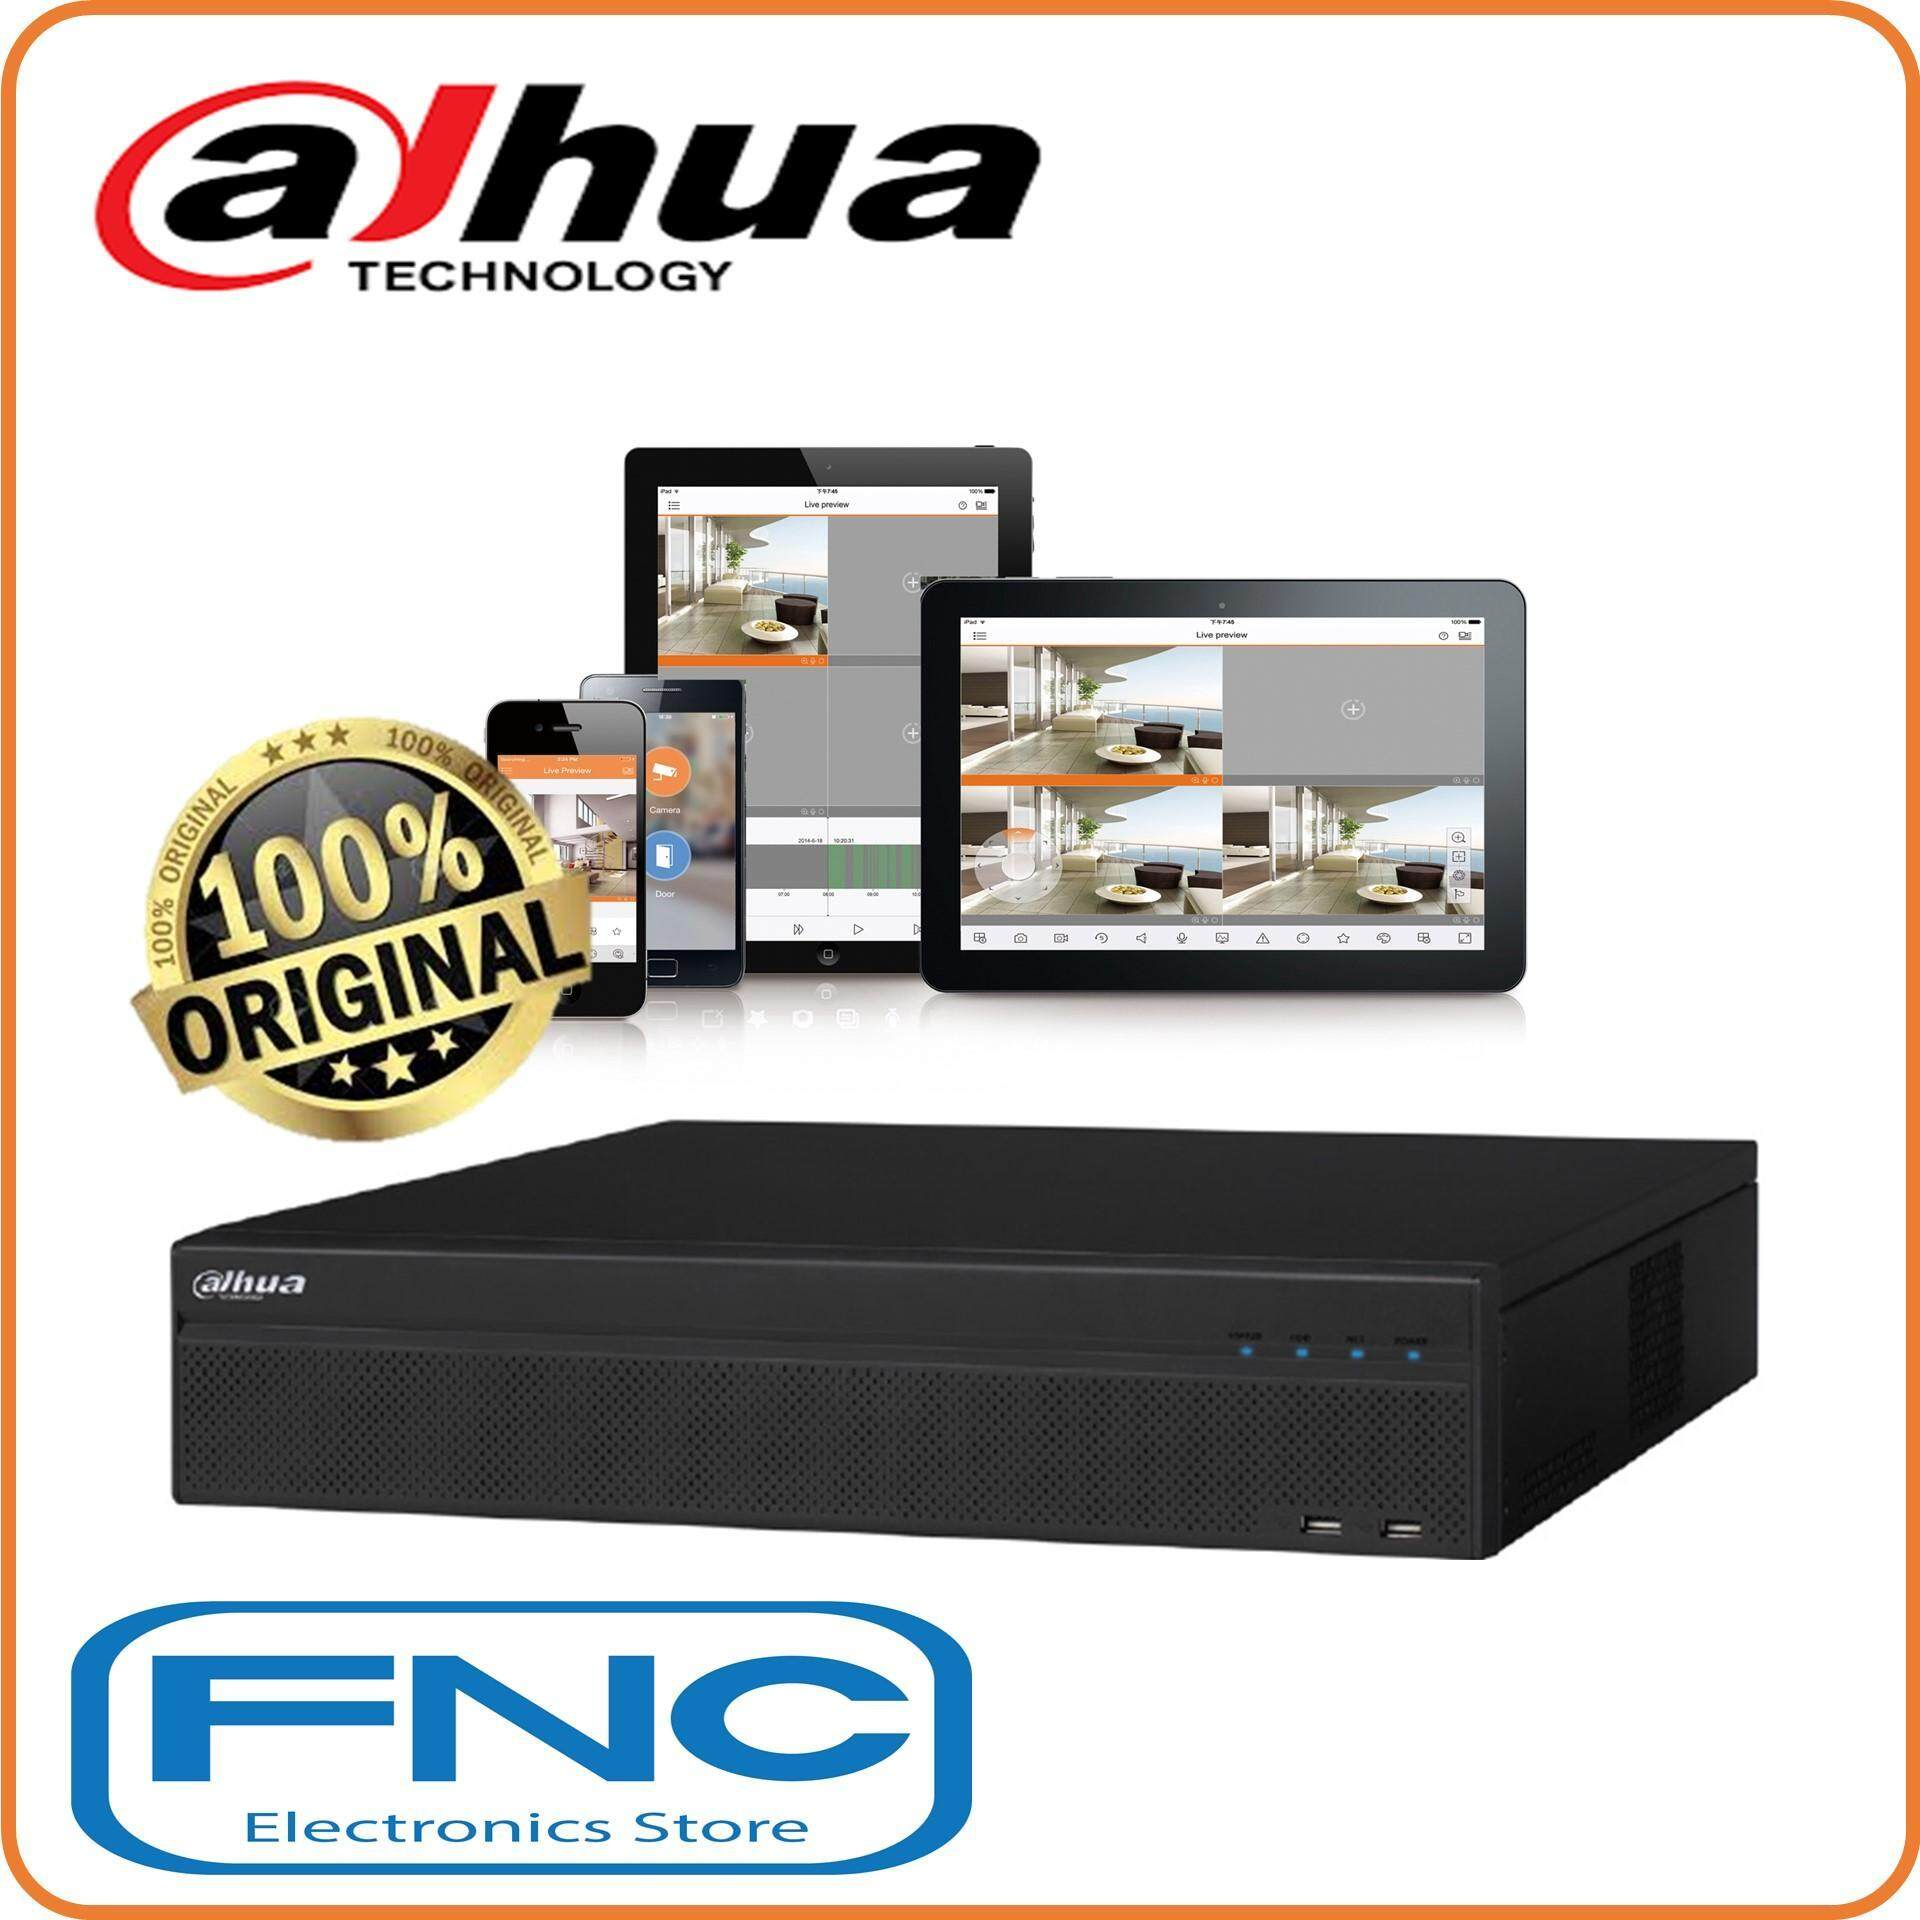 Dahua Xvr5816s-X Analog 16ch 2mp 1080p H.265+ Penta-Brid 1080p 2u 4 In 1 ( Hdcvi/ahd/tvi/cvbs/ip ) Digital Video Recorder By Fnc Electronics Store.